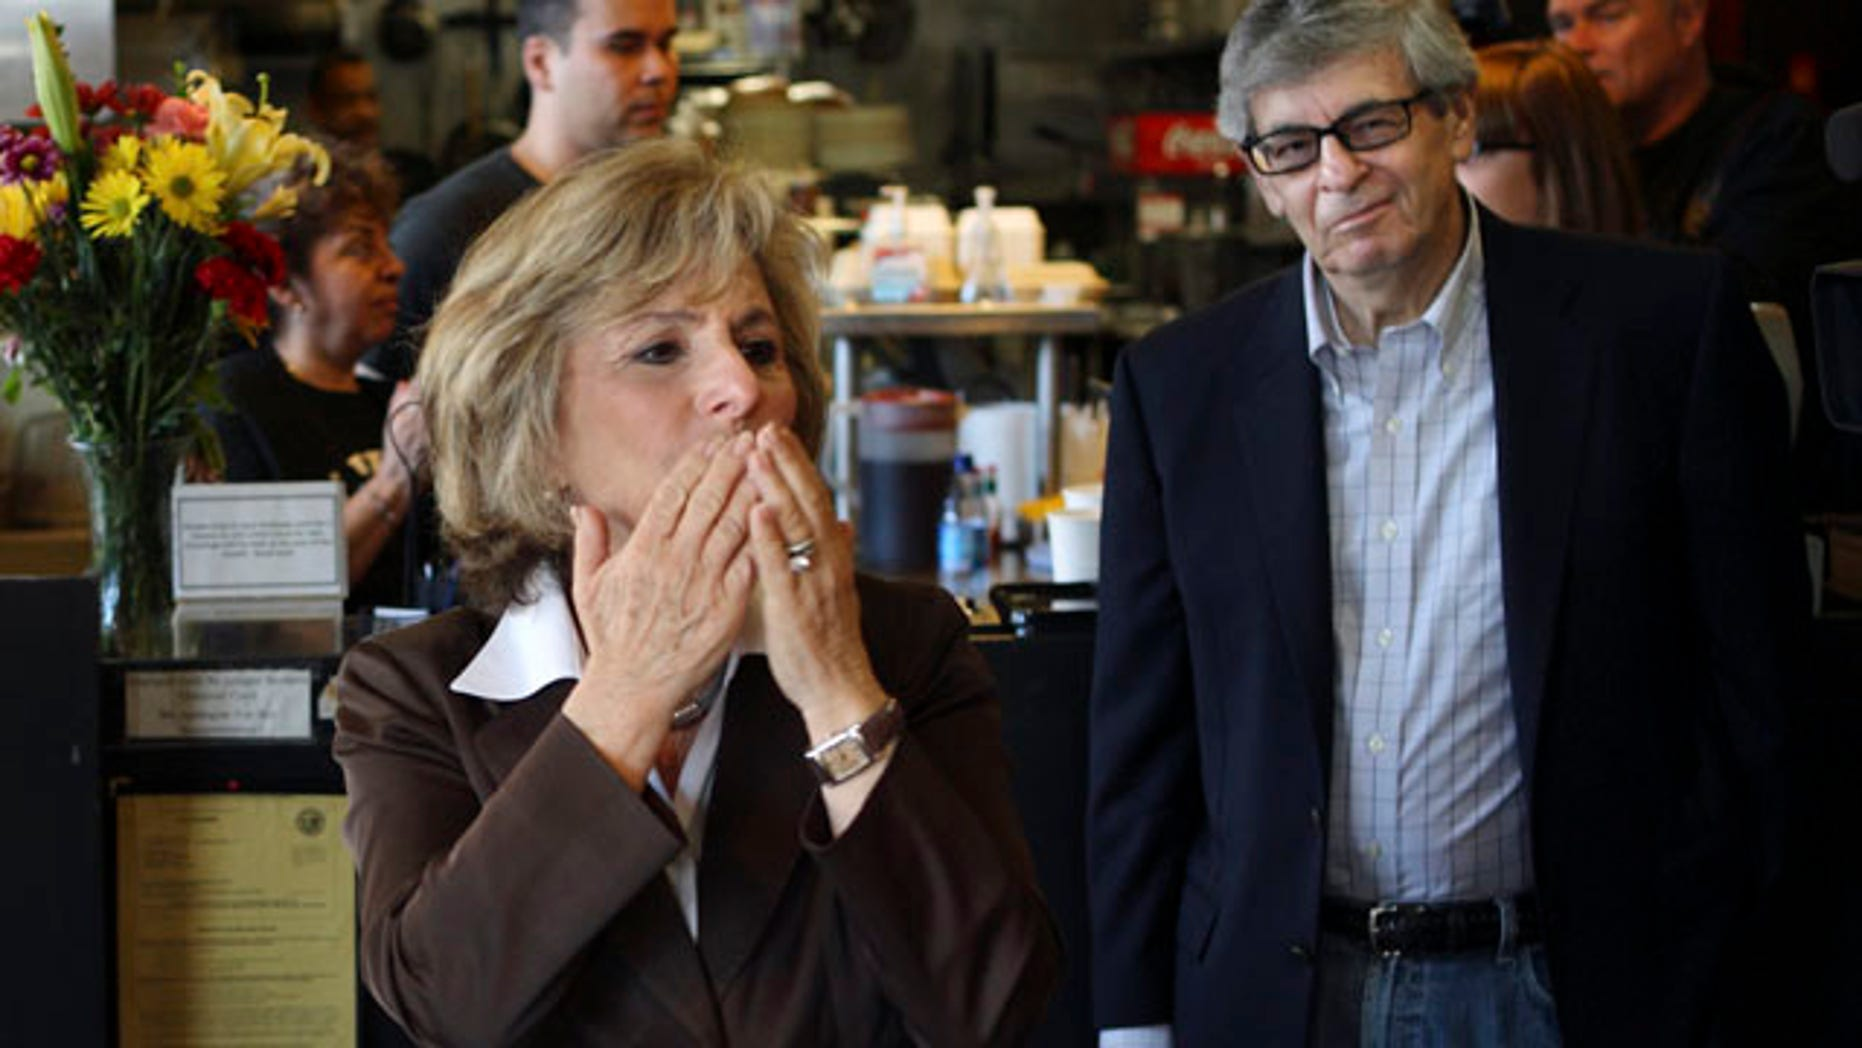 Sen. Barbara Boxer, accompanied by her husband Stewart, right, stops into the Oakland Grill, a favorite eatery, to thank supporters on this Election Day